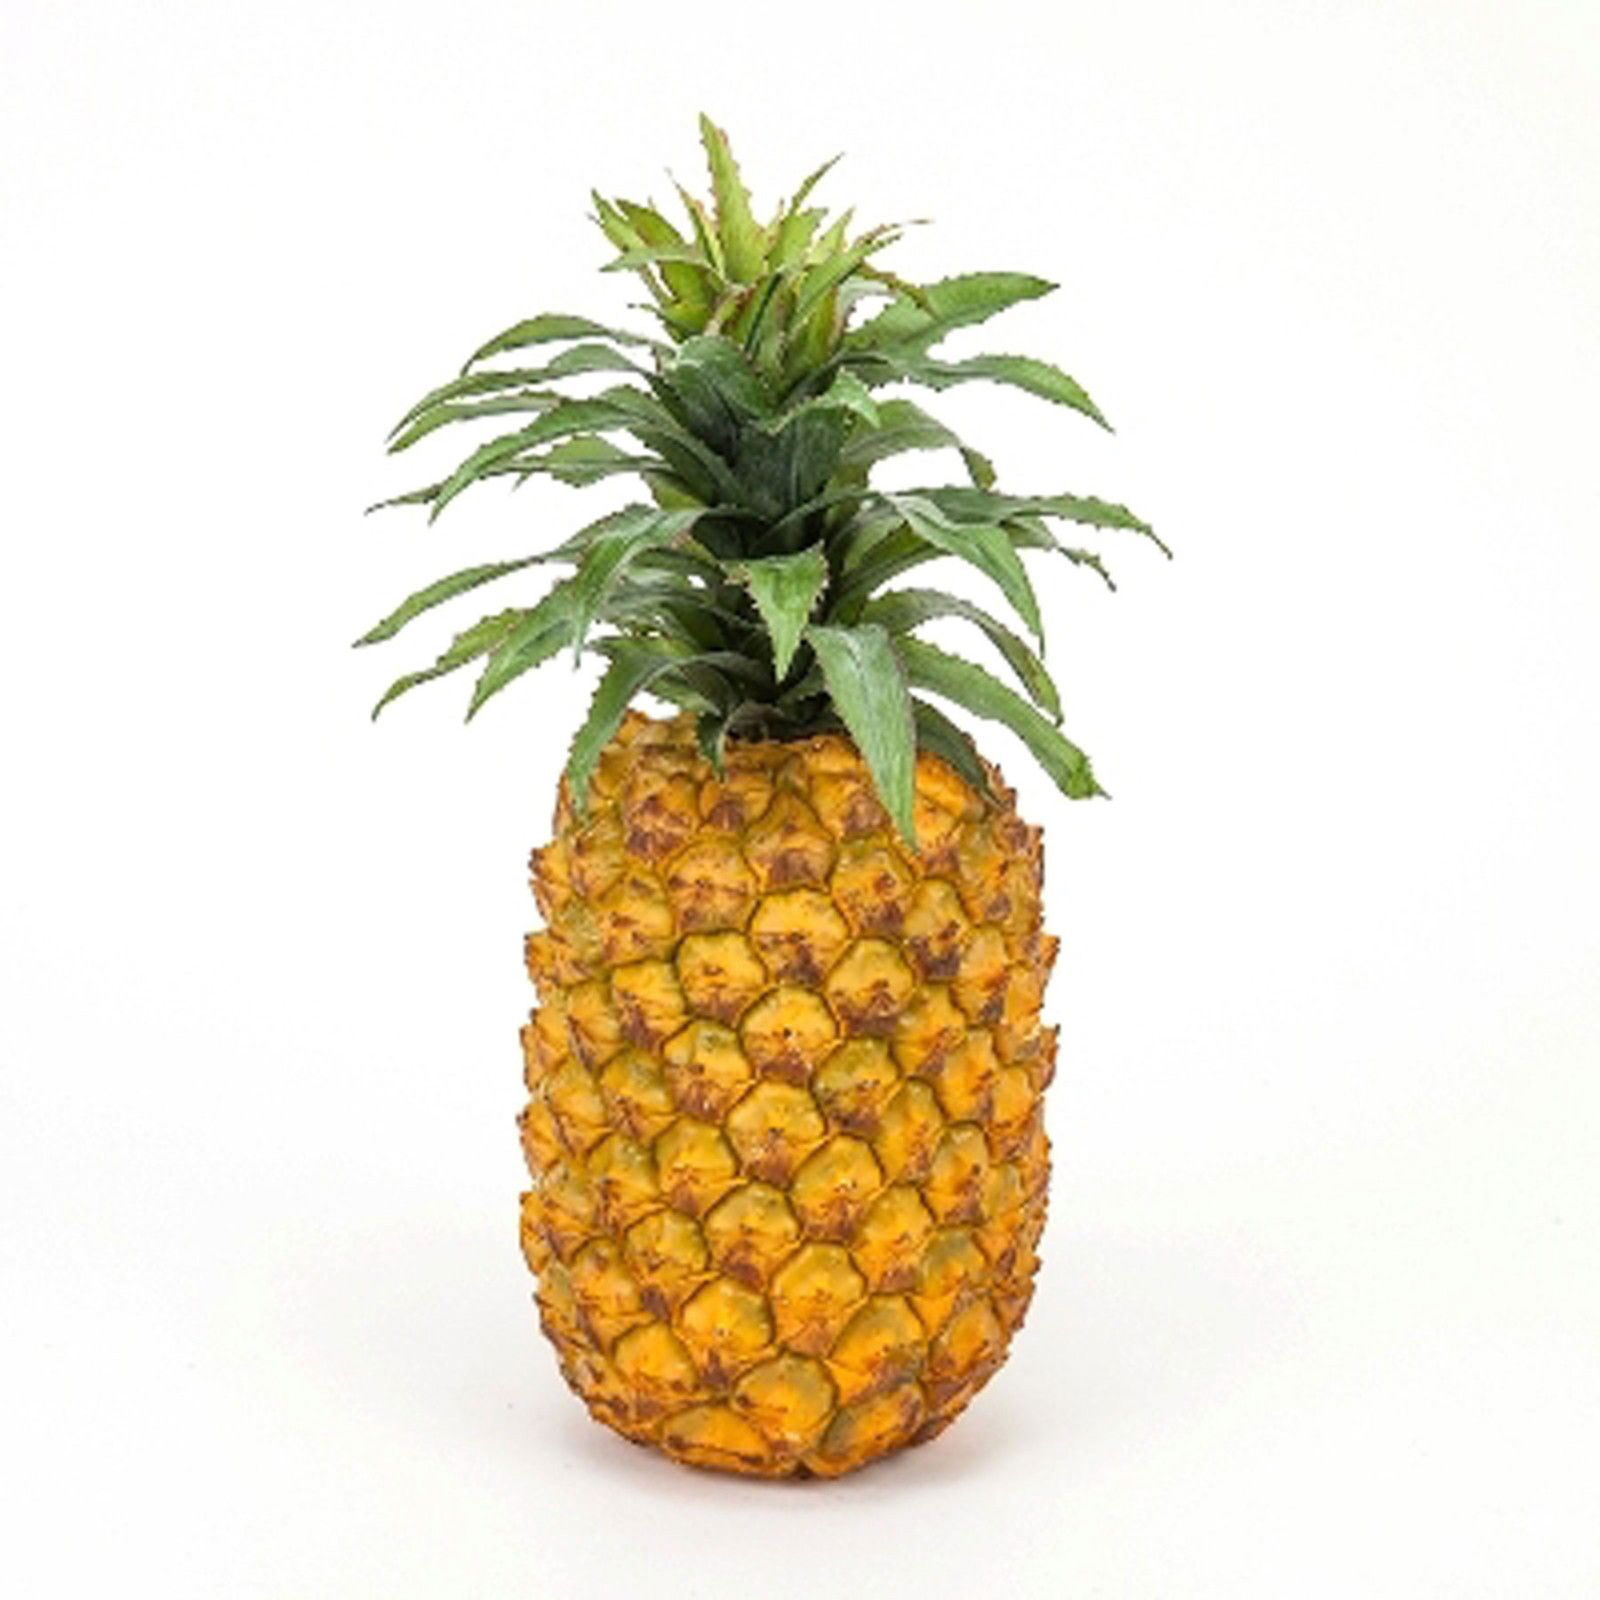 Decorative Fruit and Vegetables 36018: Artificial Large Pineapple Decor Fake Fruit Realistic Life Size Pineapple 11 -> BUY IT NOW ONLY: $39.95 on eBay!